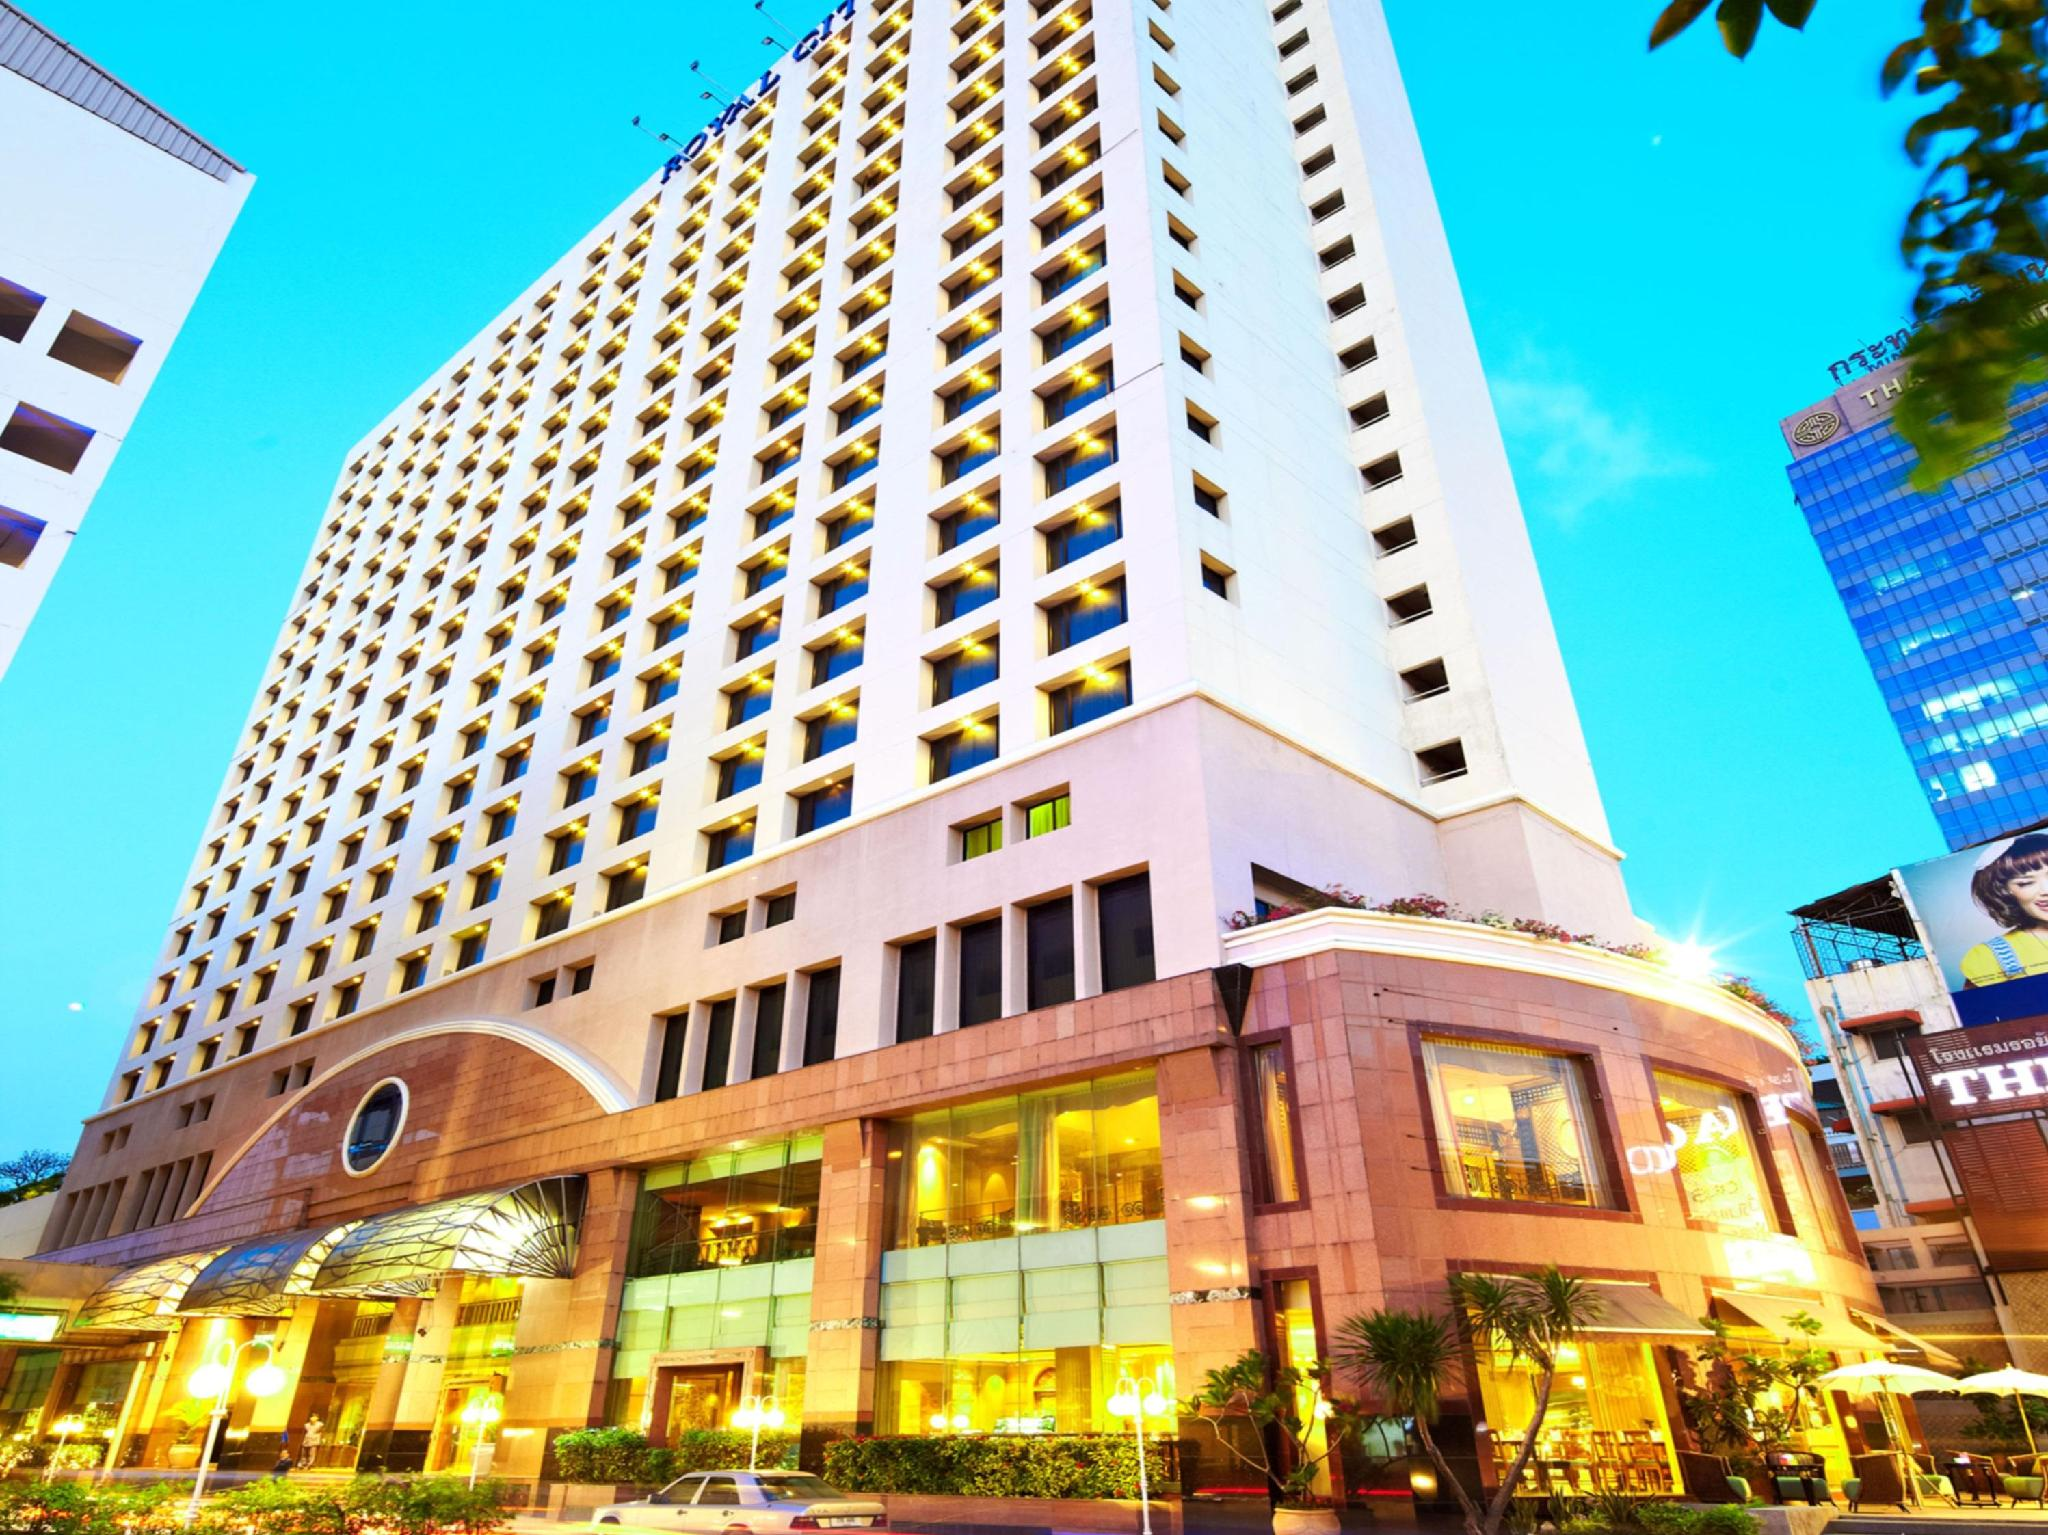 The Royal City Hotel Bangkok